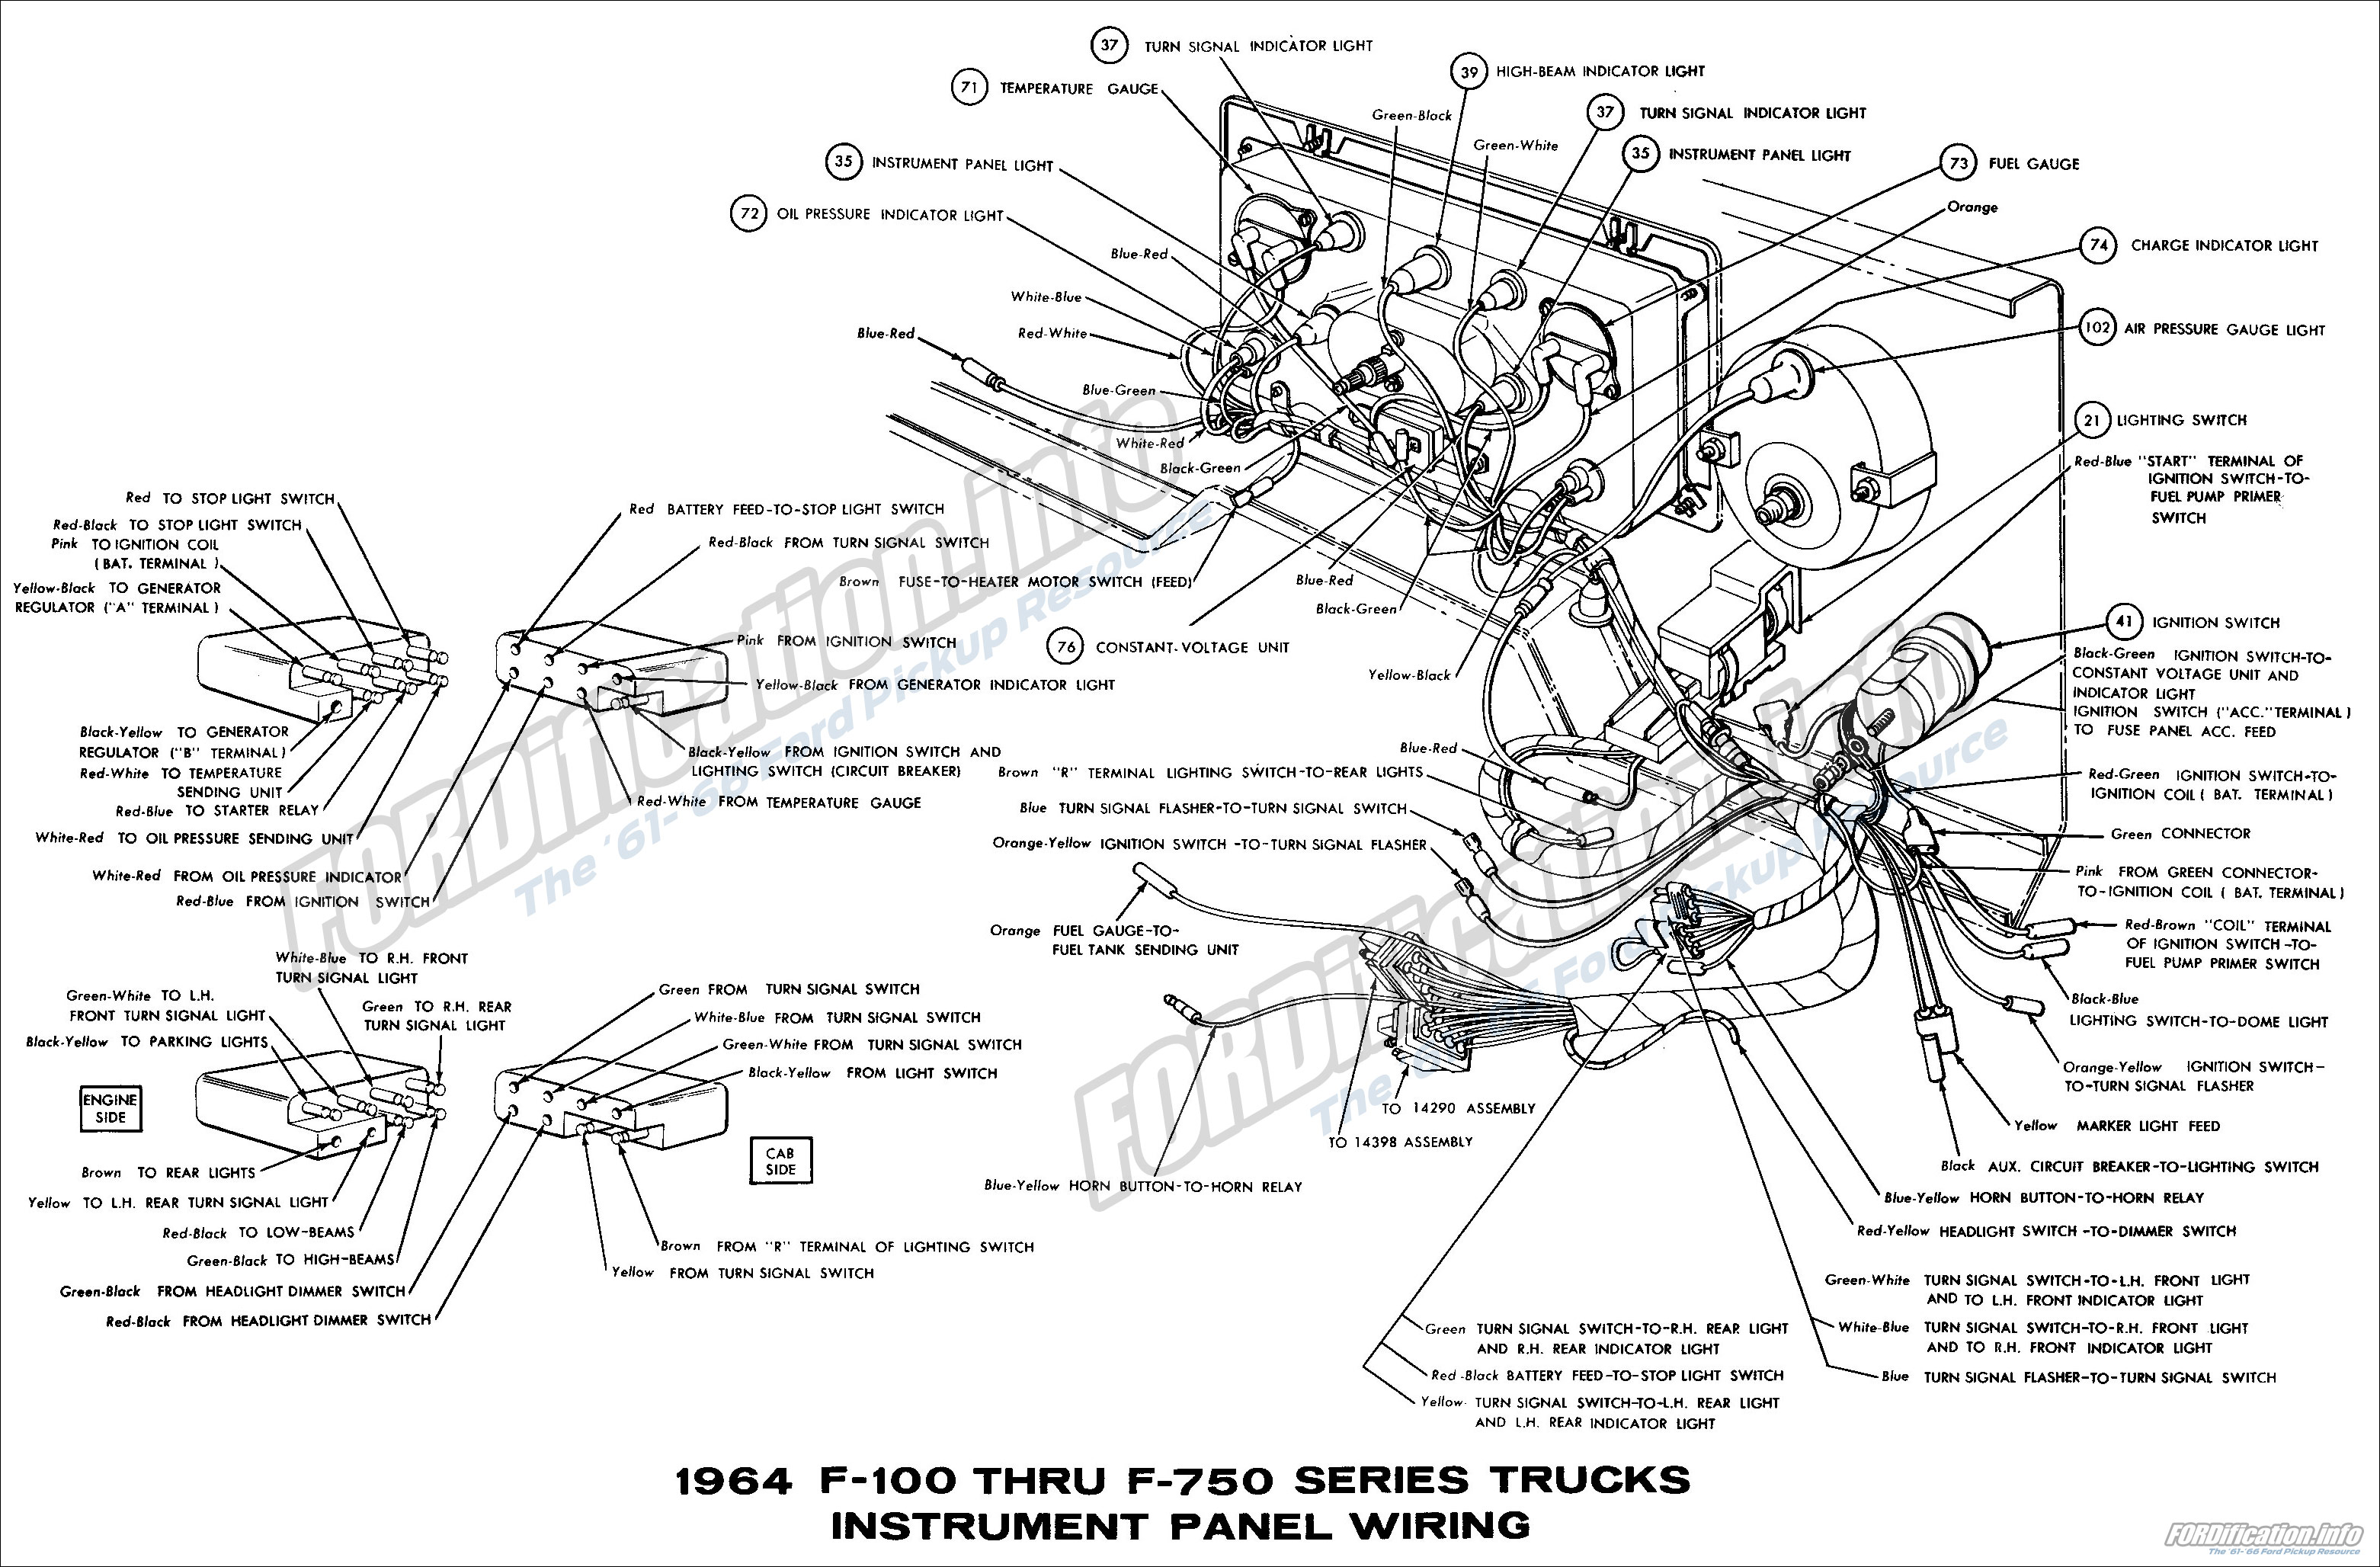 Tk 64 Mustang Wiring Diagram Download Diagram